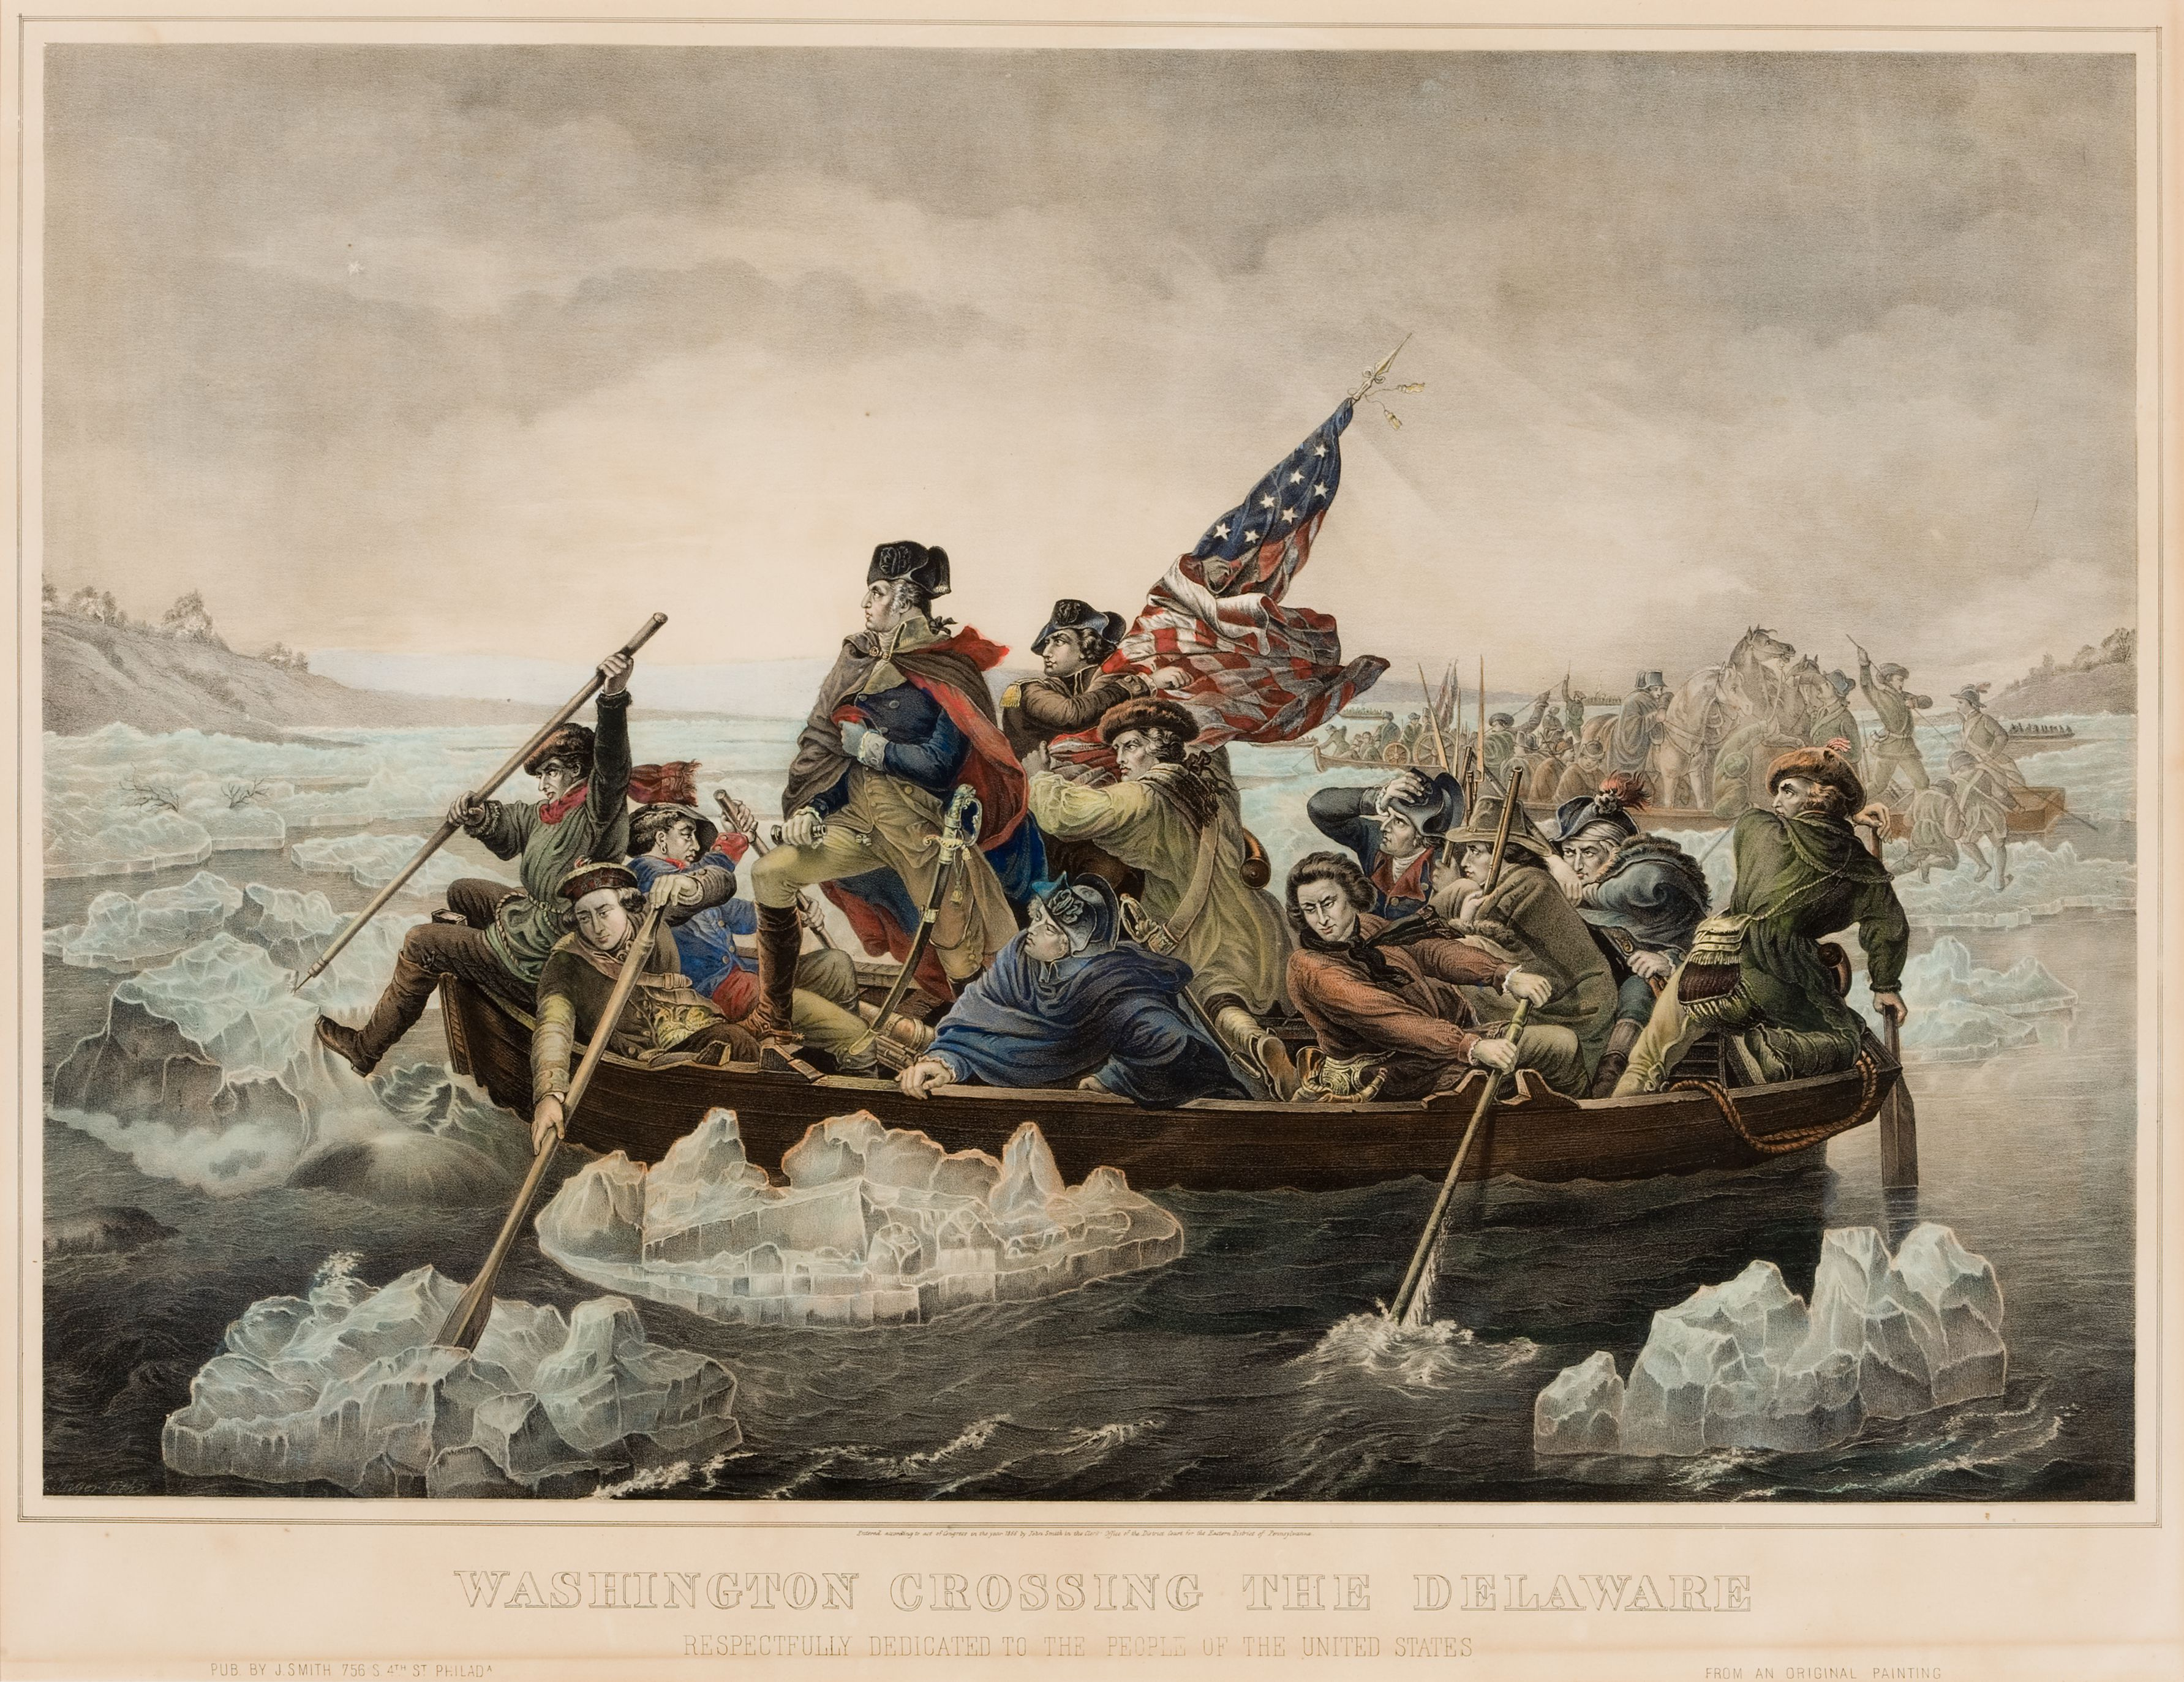 george washington crossing the delaware essay 1 george washingtoncrossing the delawaremr breheneyus history iroom 21 2 why cross the delawarewhy thengeorge washington crossing the delaware wasa desperate move when the country needed itthe mostgave a morale boost to the troopshessians occupied trenton on.